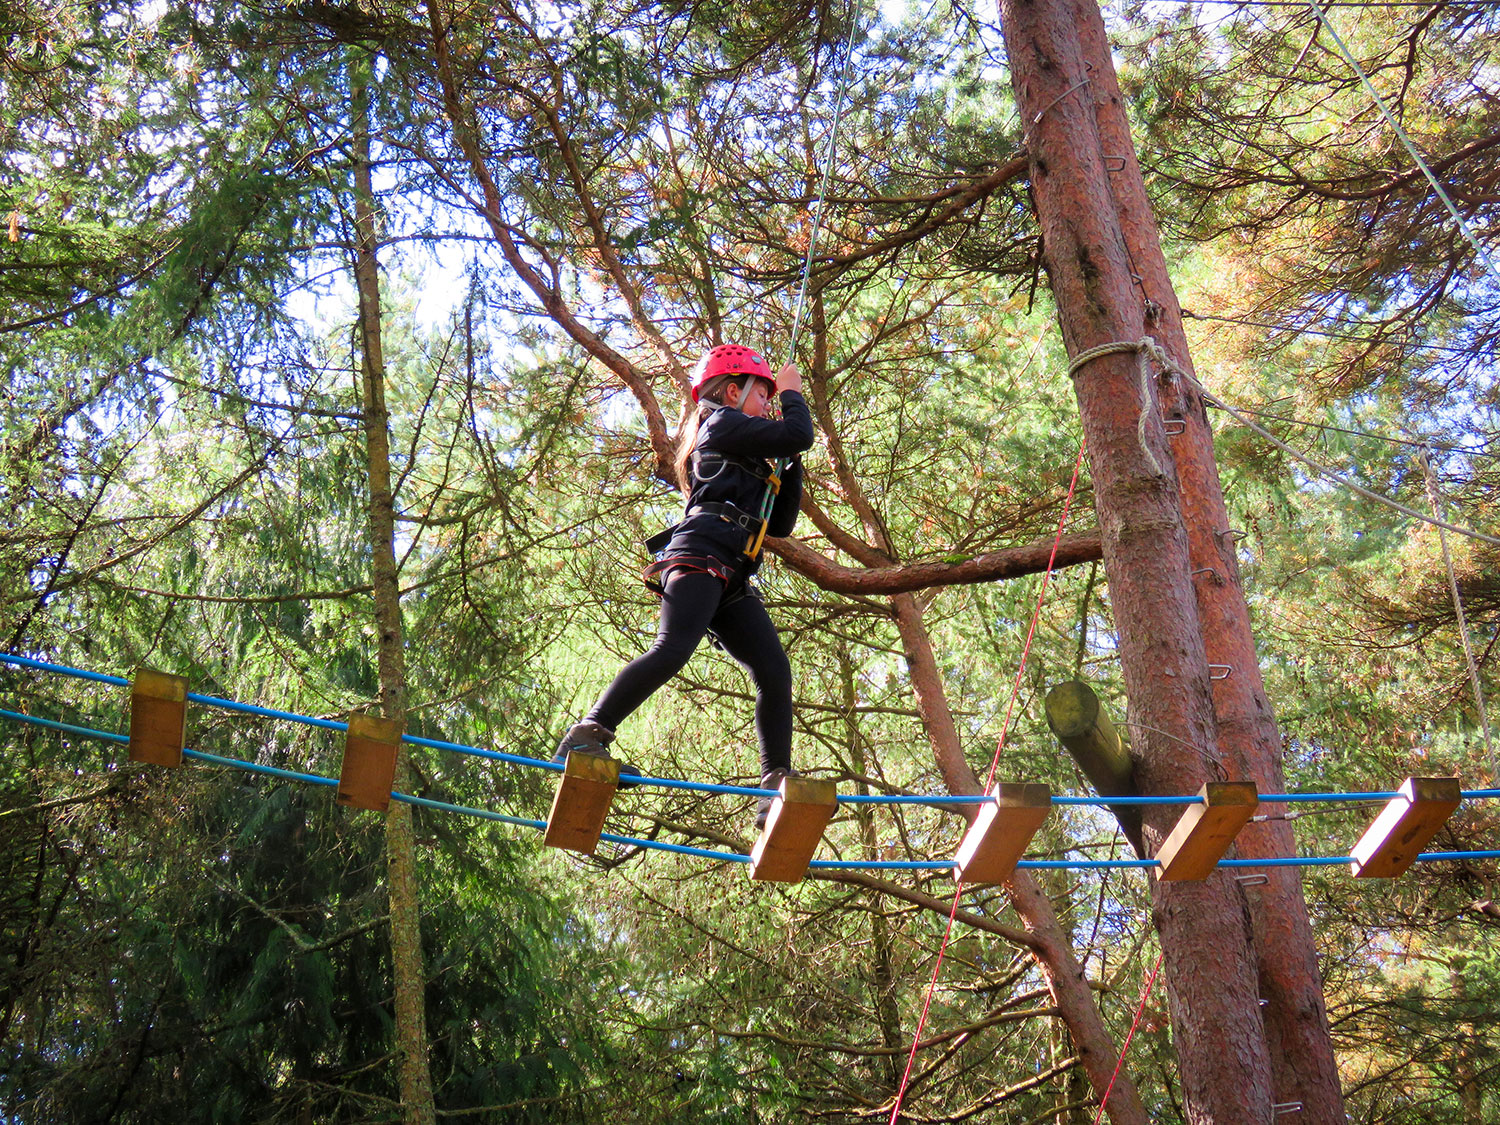 a-young-girl-enjoying-family-days-out-on-the-high-ropes-and-more-things-to-do-with-kids-in-the-new-forest